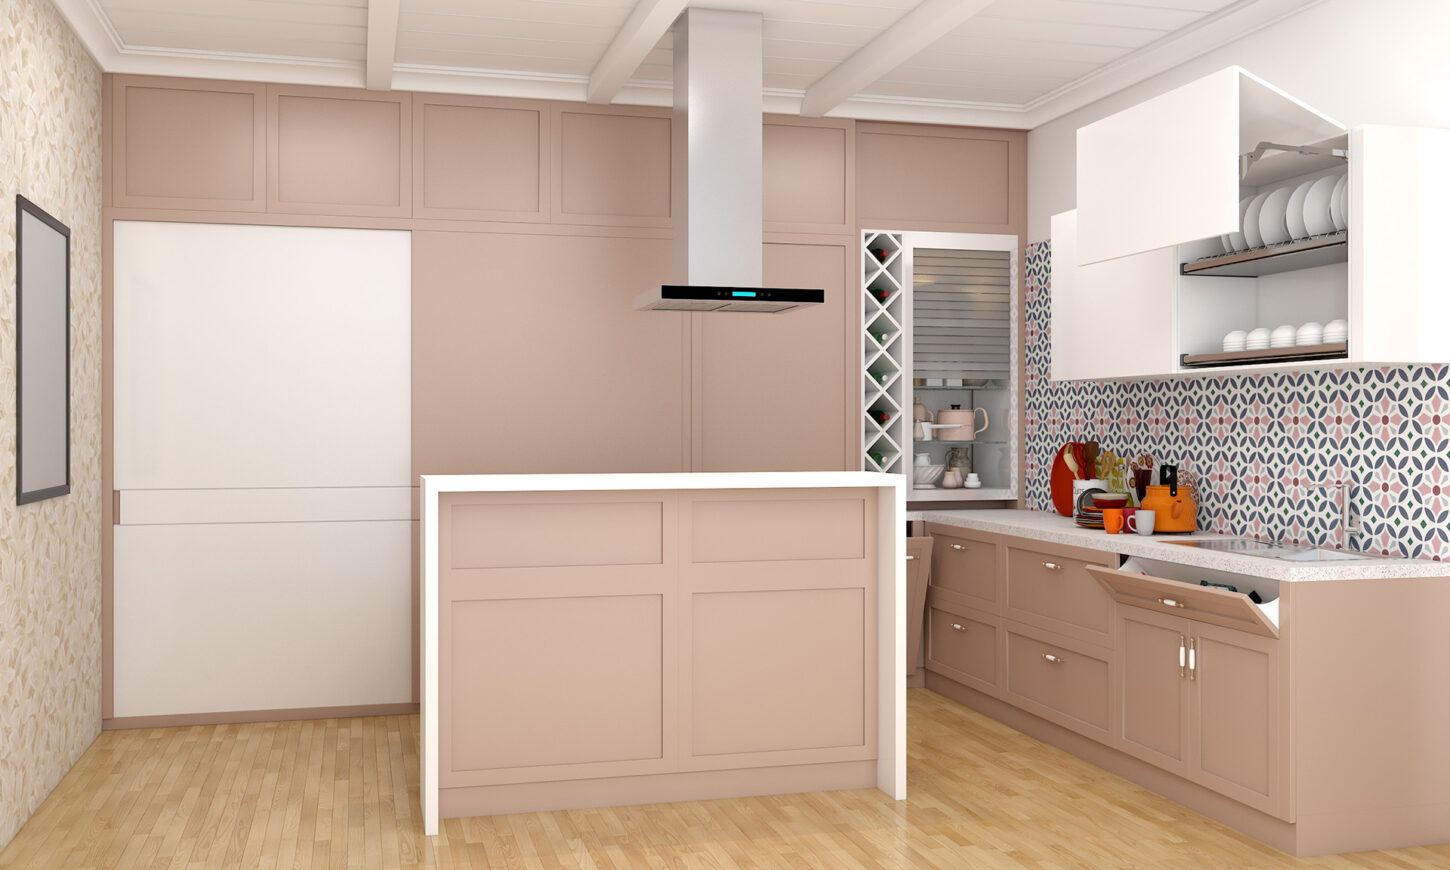 An island kitchen in a minimal modular kitchen design.